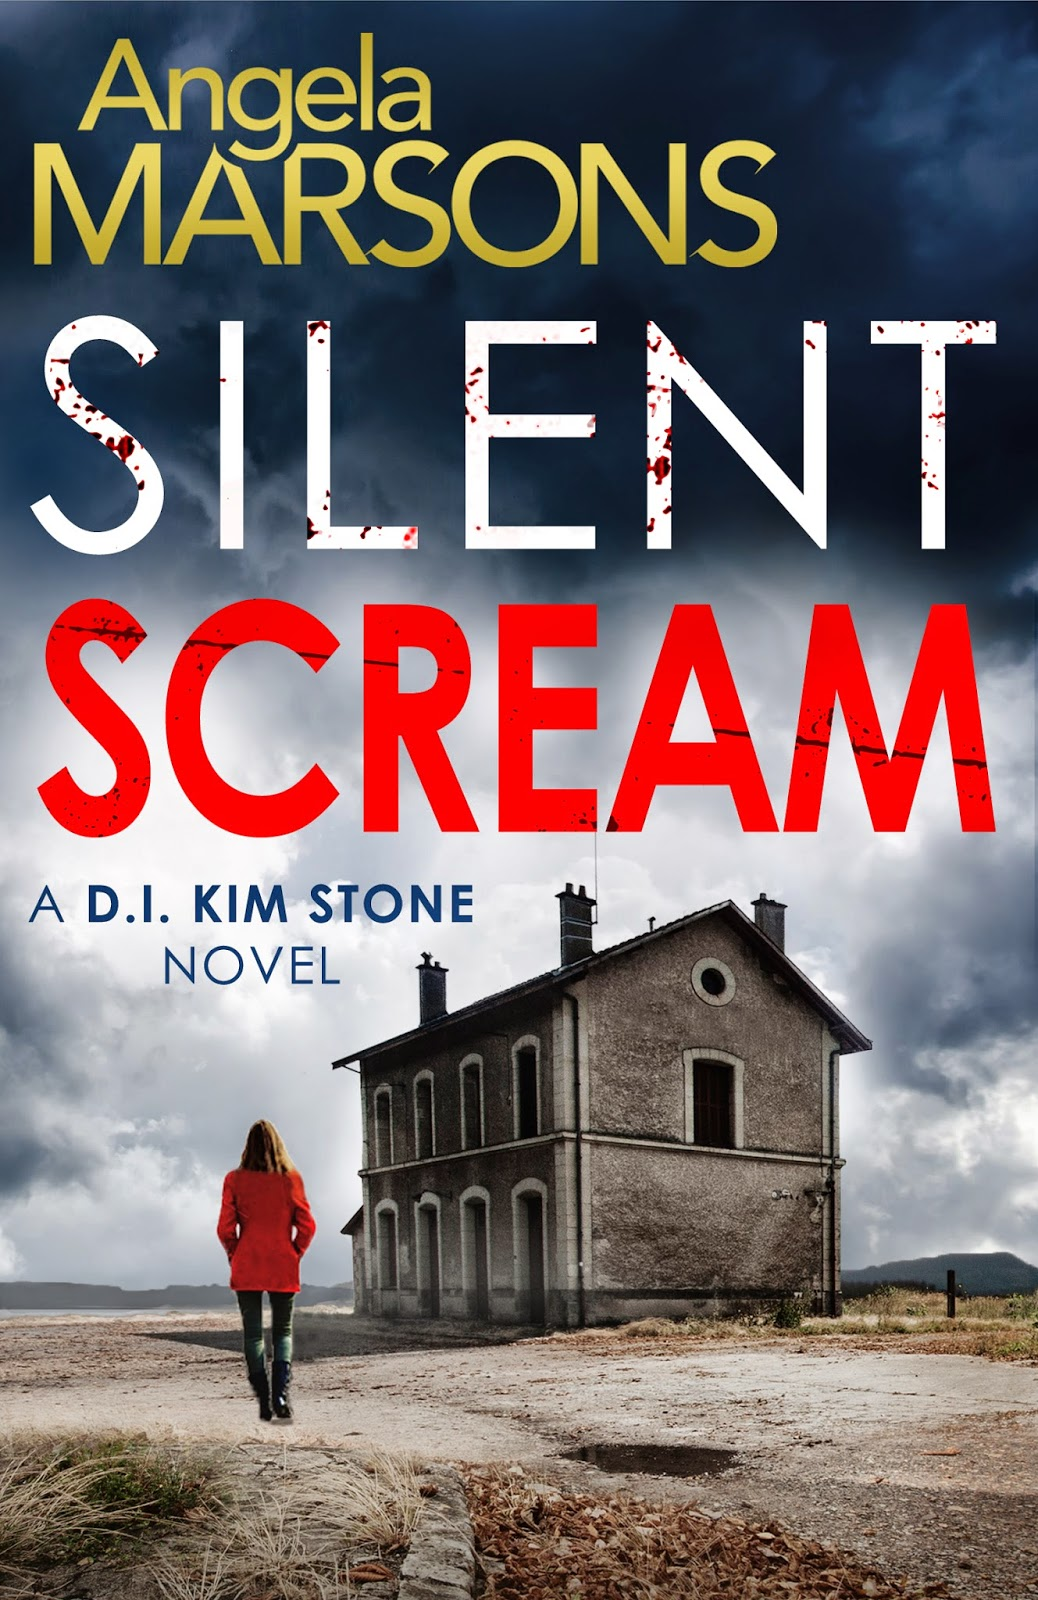 https://www.goodreads.com/book/show/24483265-silent-scream?ac=1